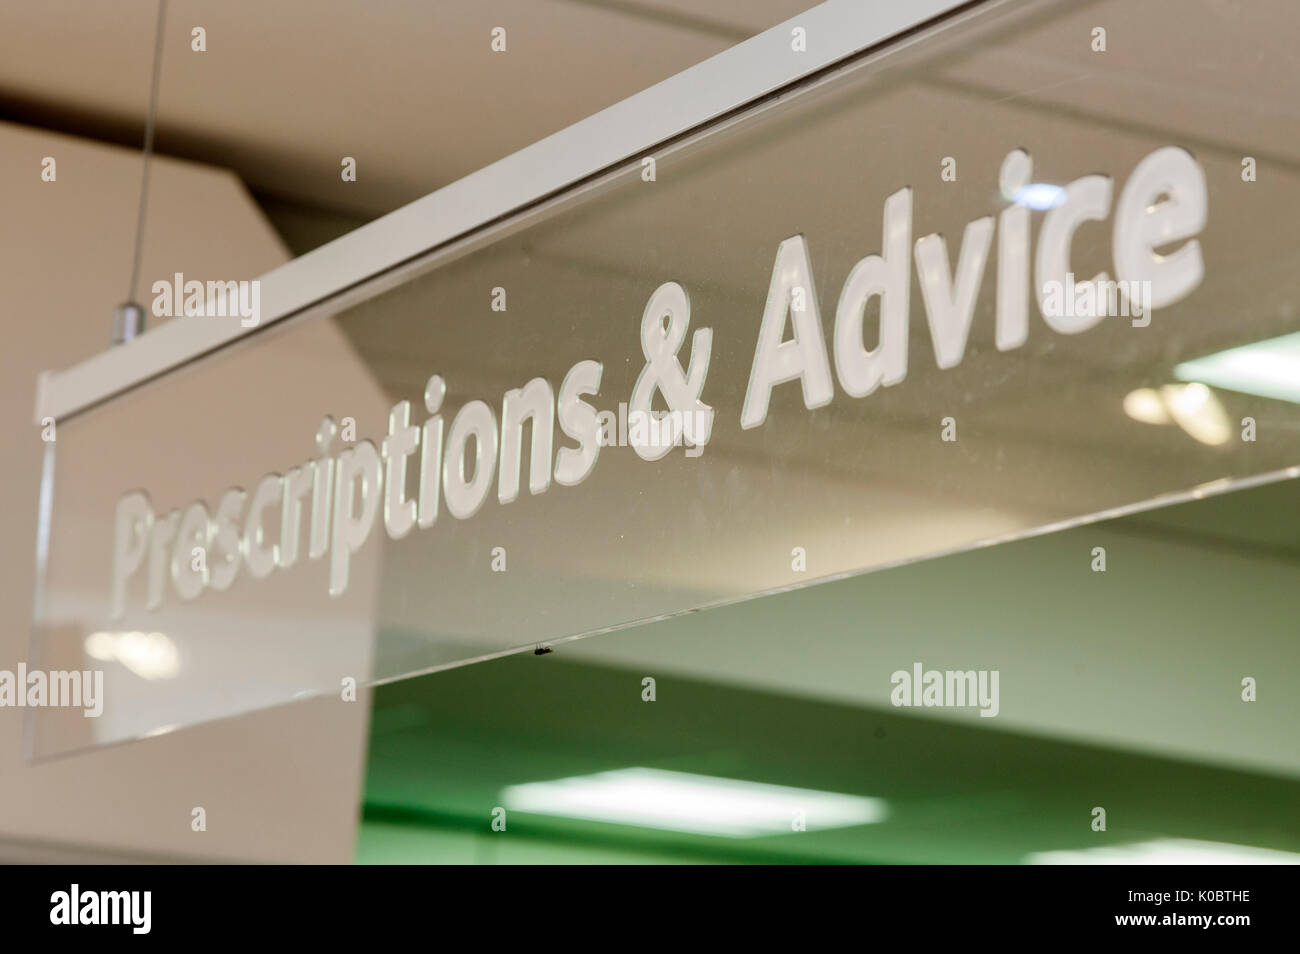 Prescriptions and advice sign in a chemist shop,pharmacy shelf,pharmacists,drug store - Stock Image